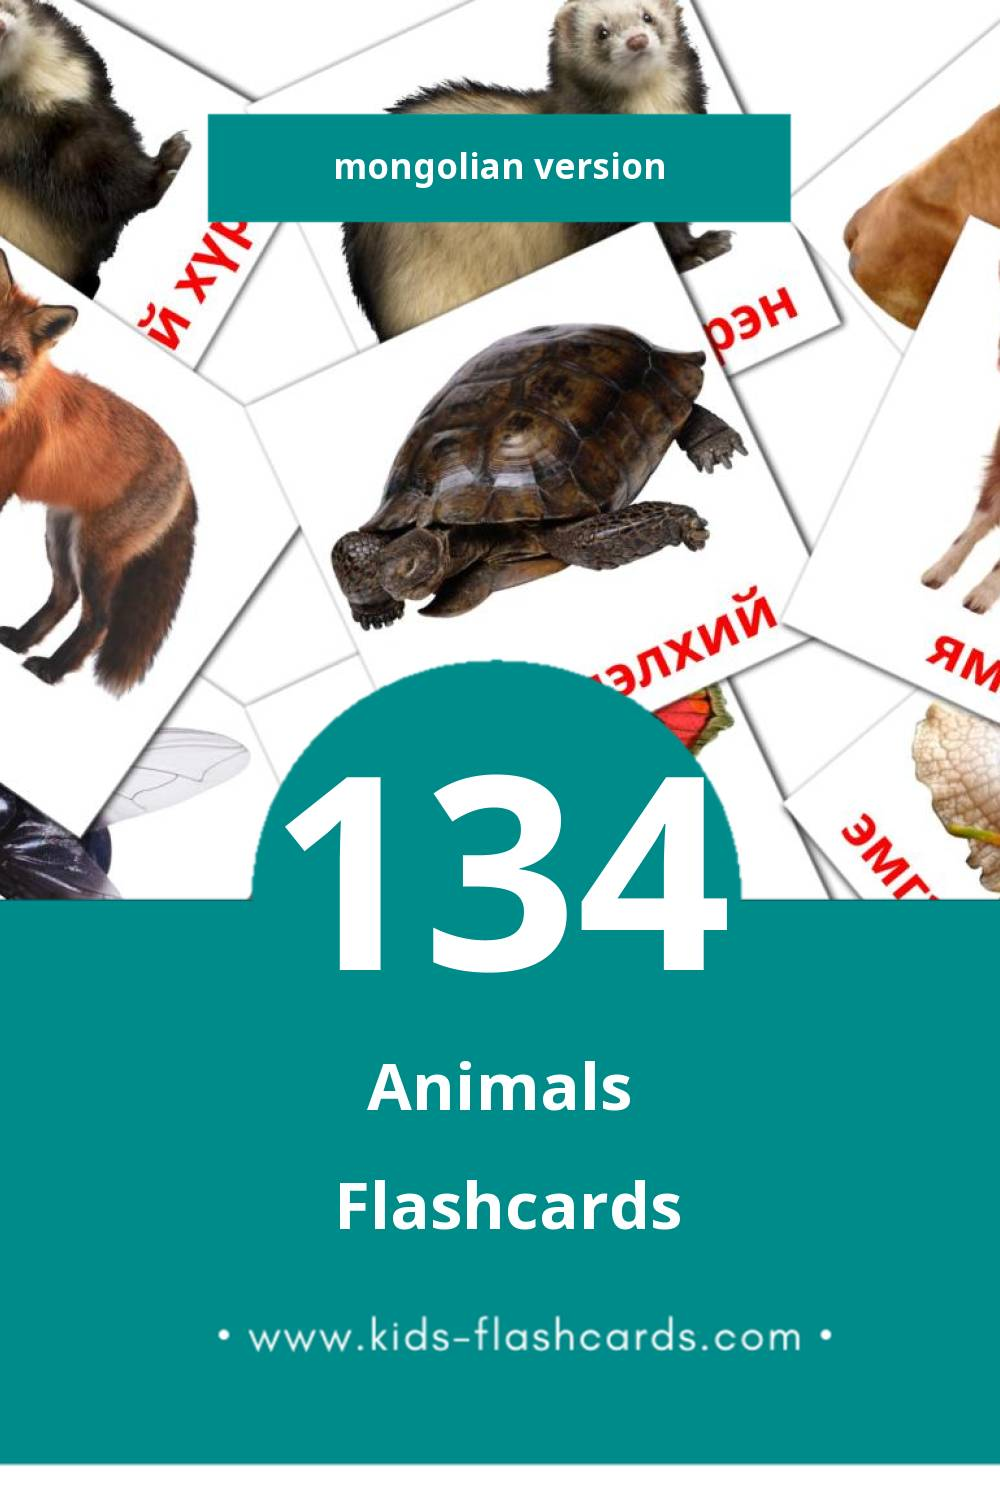 Visual Амьтад Flashcards for Toddlers (134 cards in Mongolian)